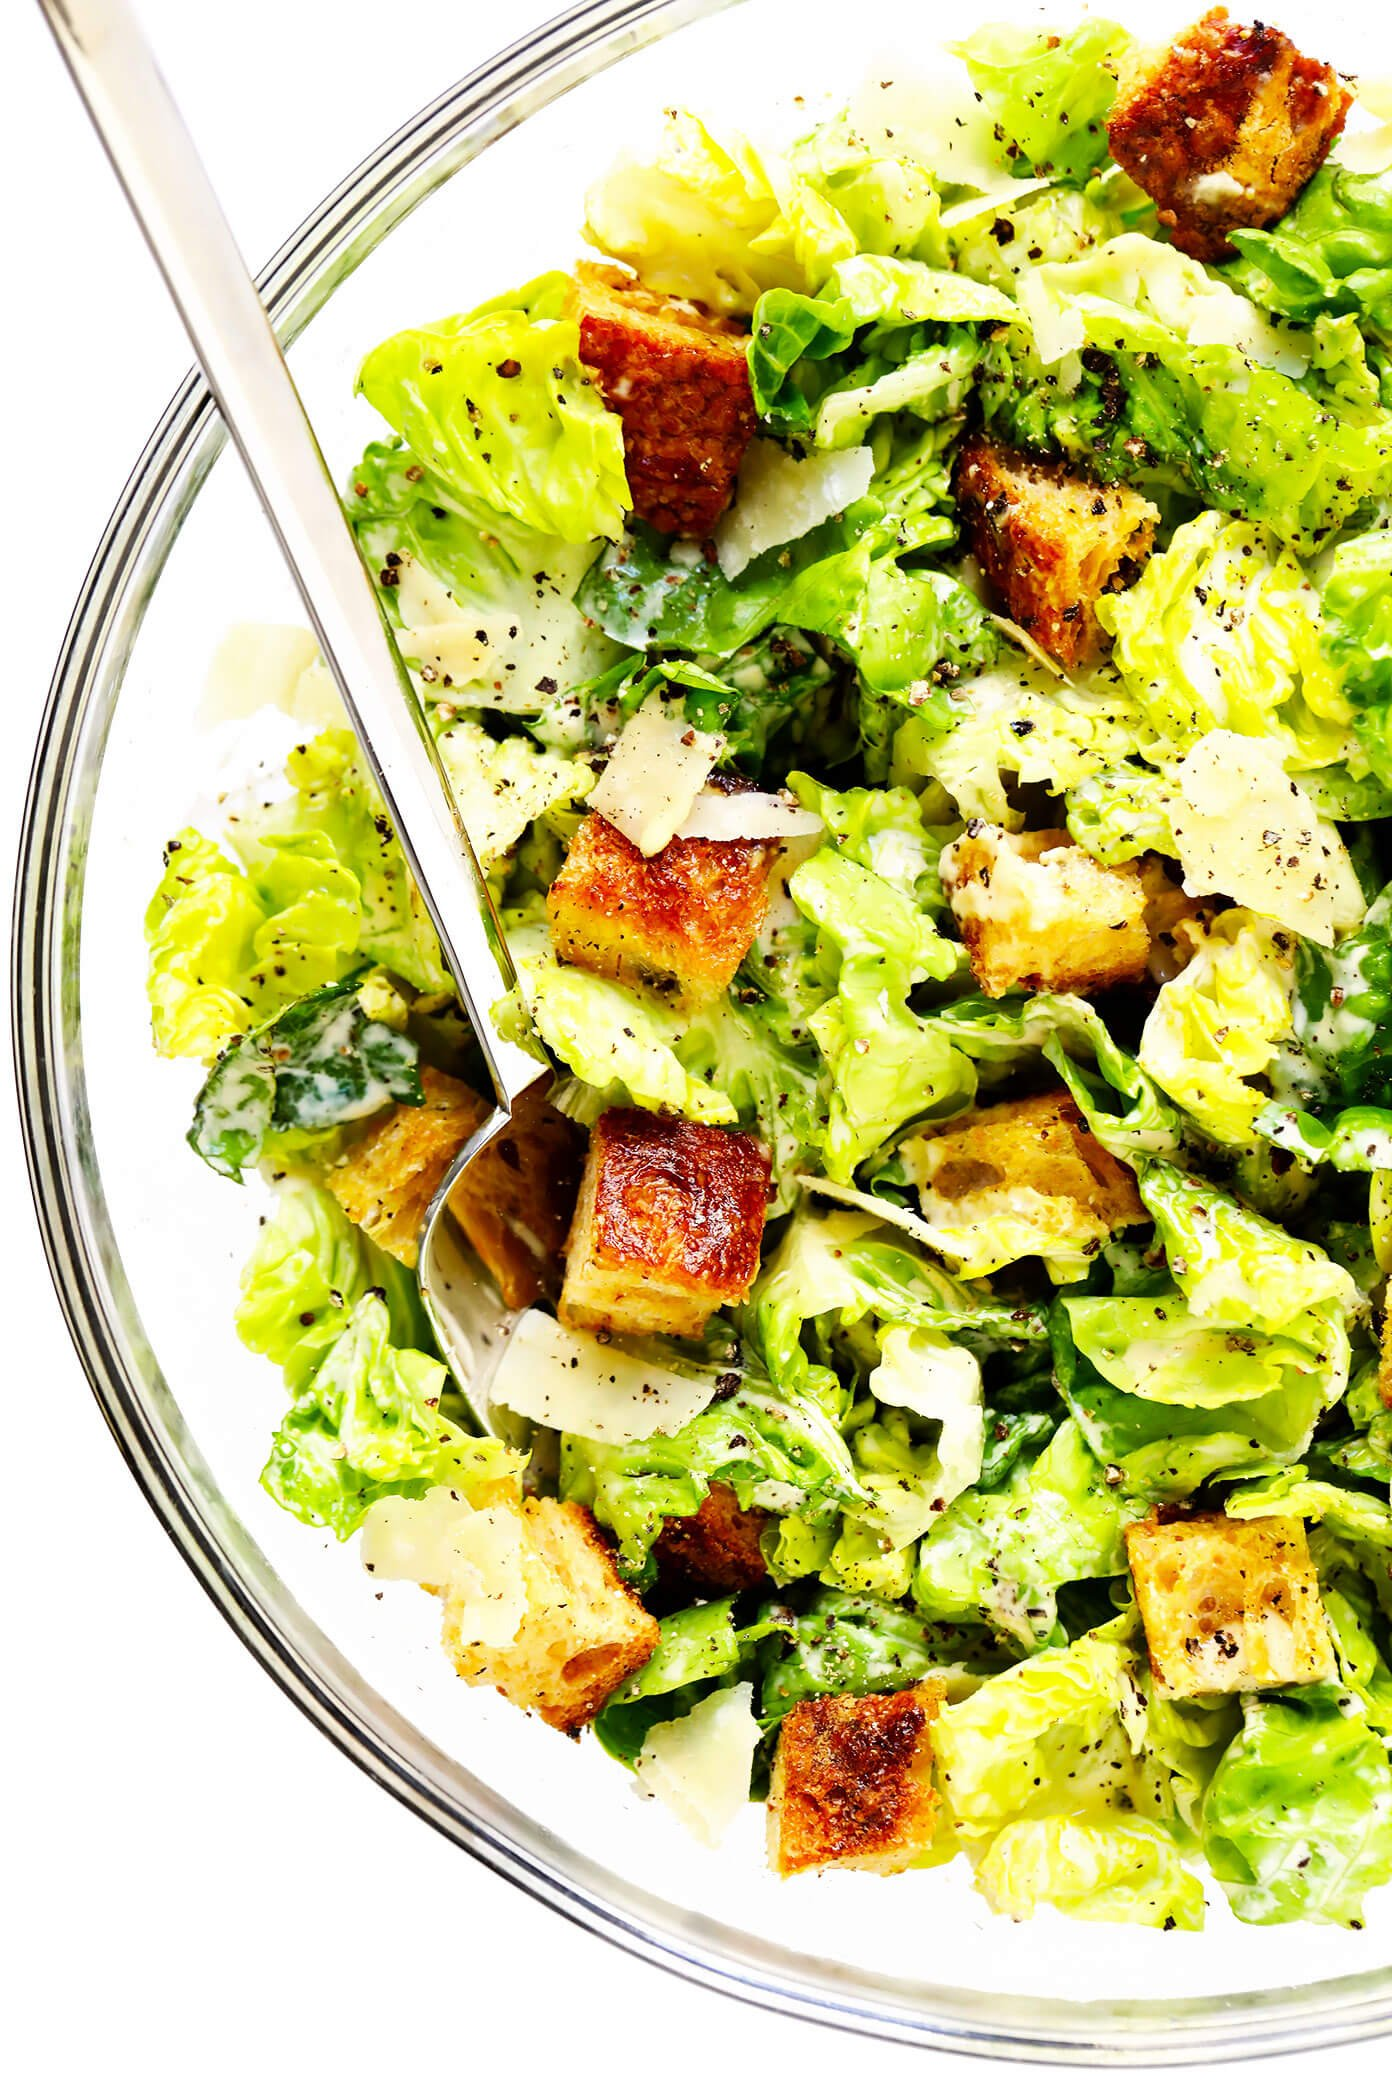 Caesar Salad in Bowl with Homemade Croutons